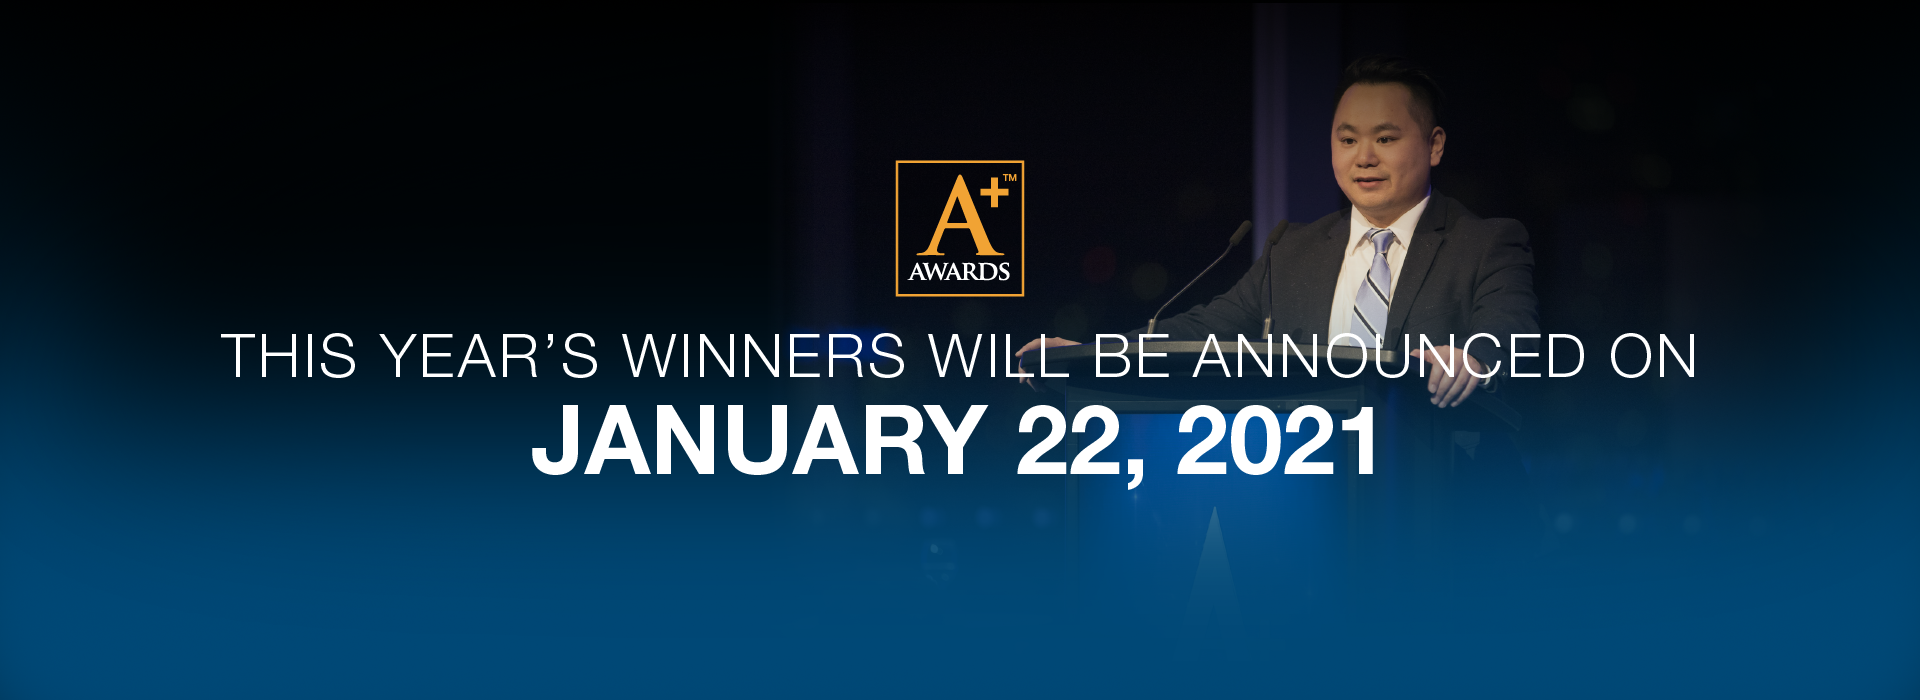 THIS YEAR'S AWARDS WILL BE HELD ON JANUARY 24, 2019